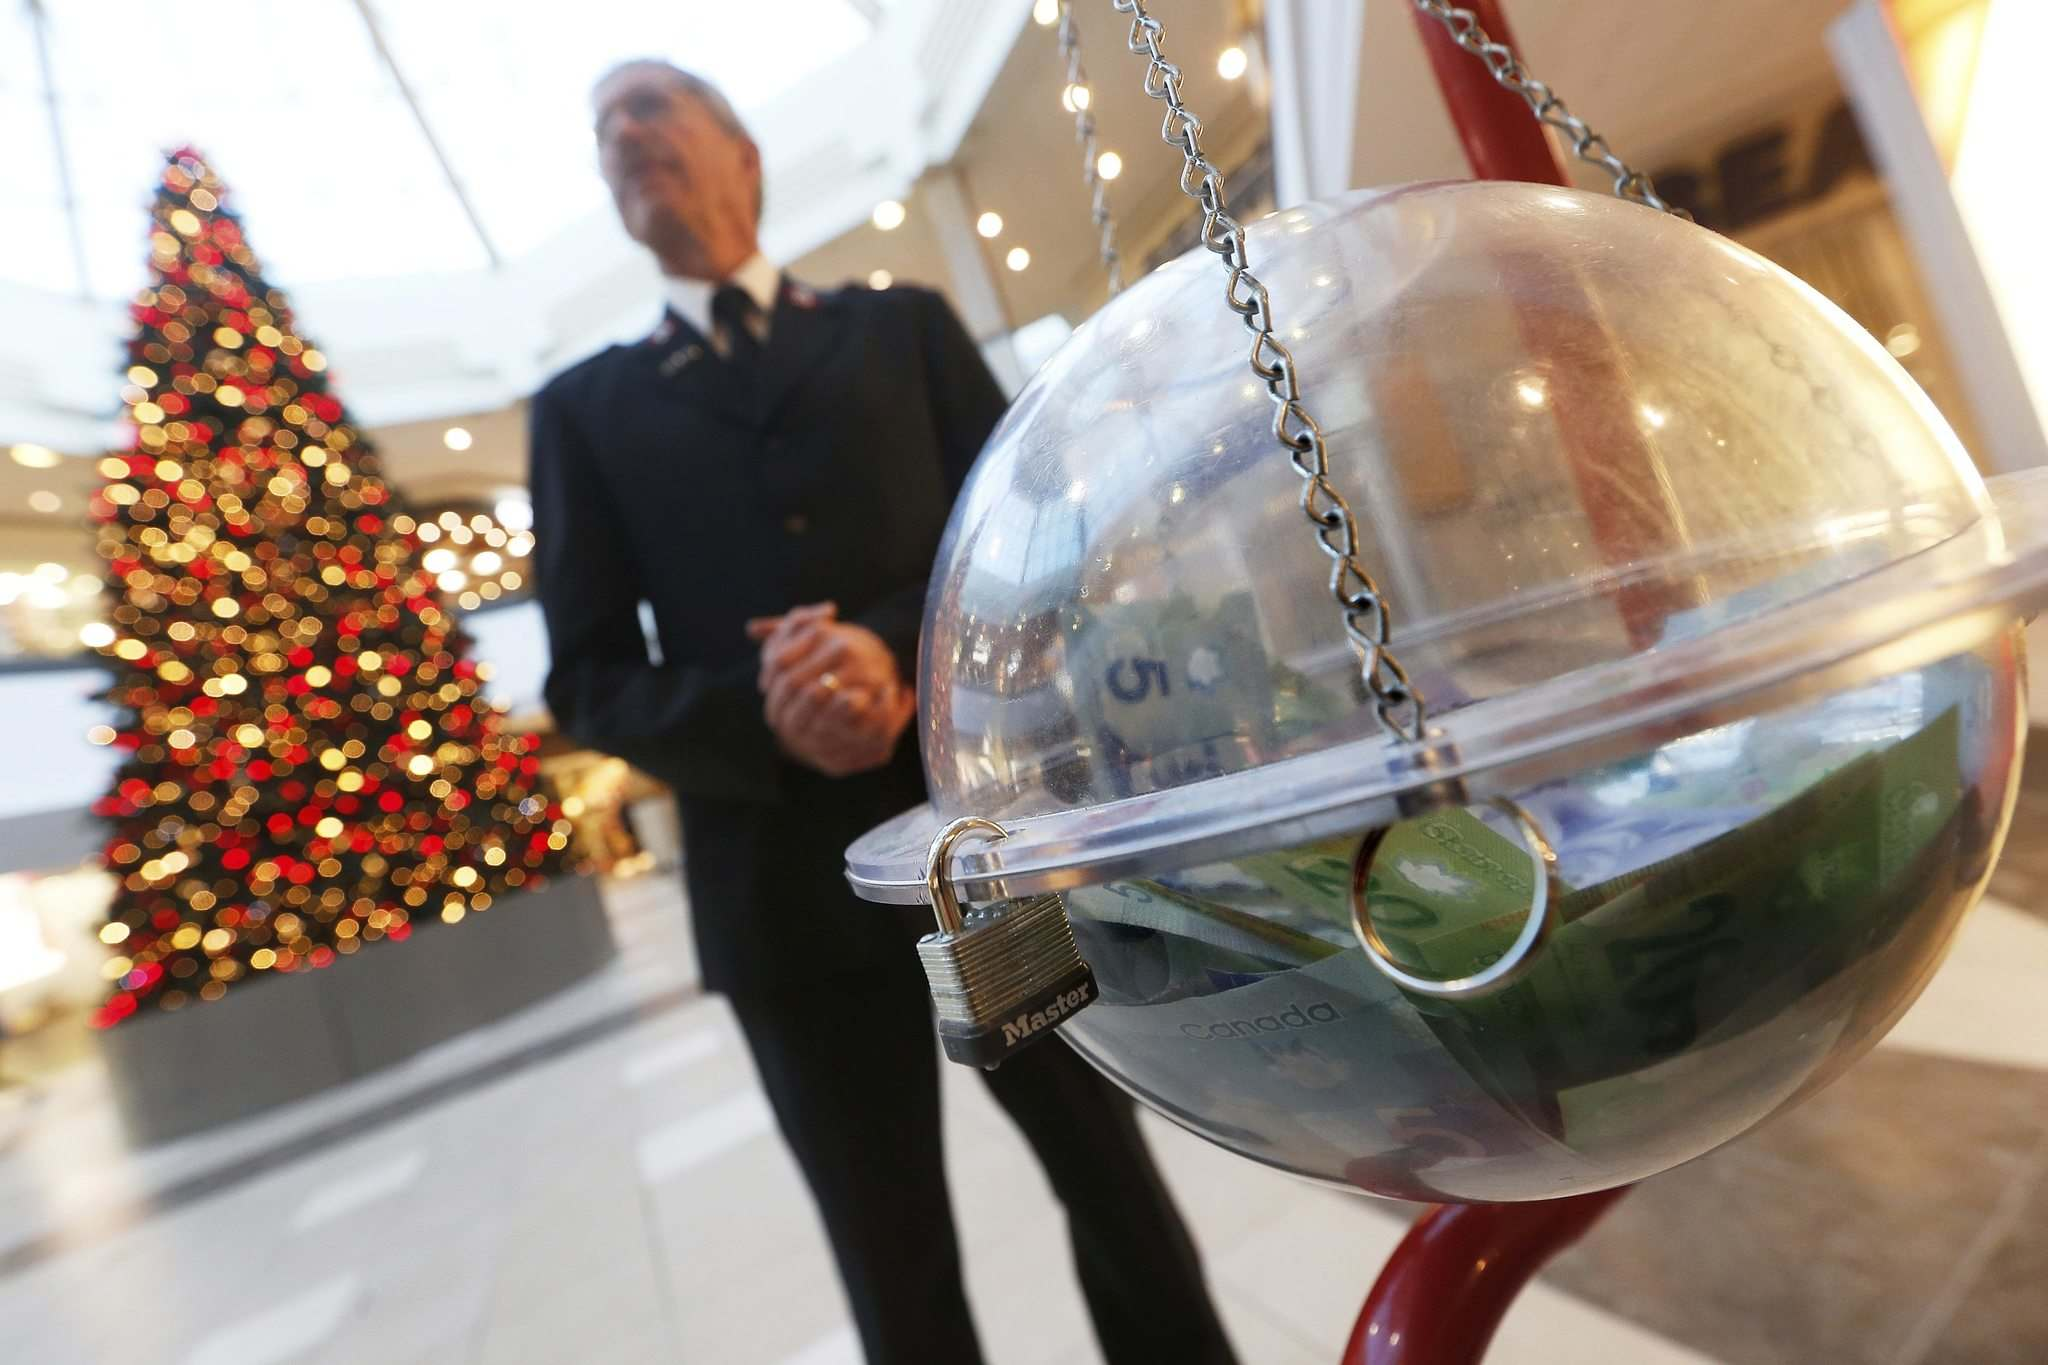 JOHN WOODS / WINNIPEG FREE PRESS</p><p>Salvation Army volunteer Roy Dueck stands with a donation kettle at Polo Park shopping centre Tuesday. The charitable organization is reporting a big drop in cash donations this year.</p>